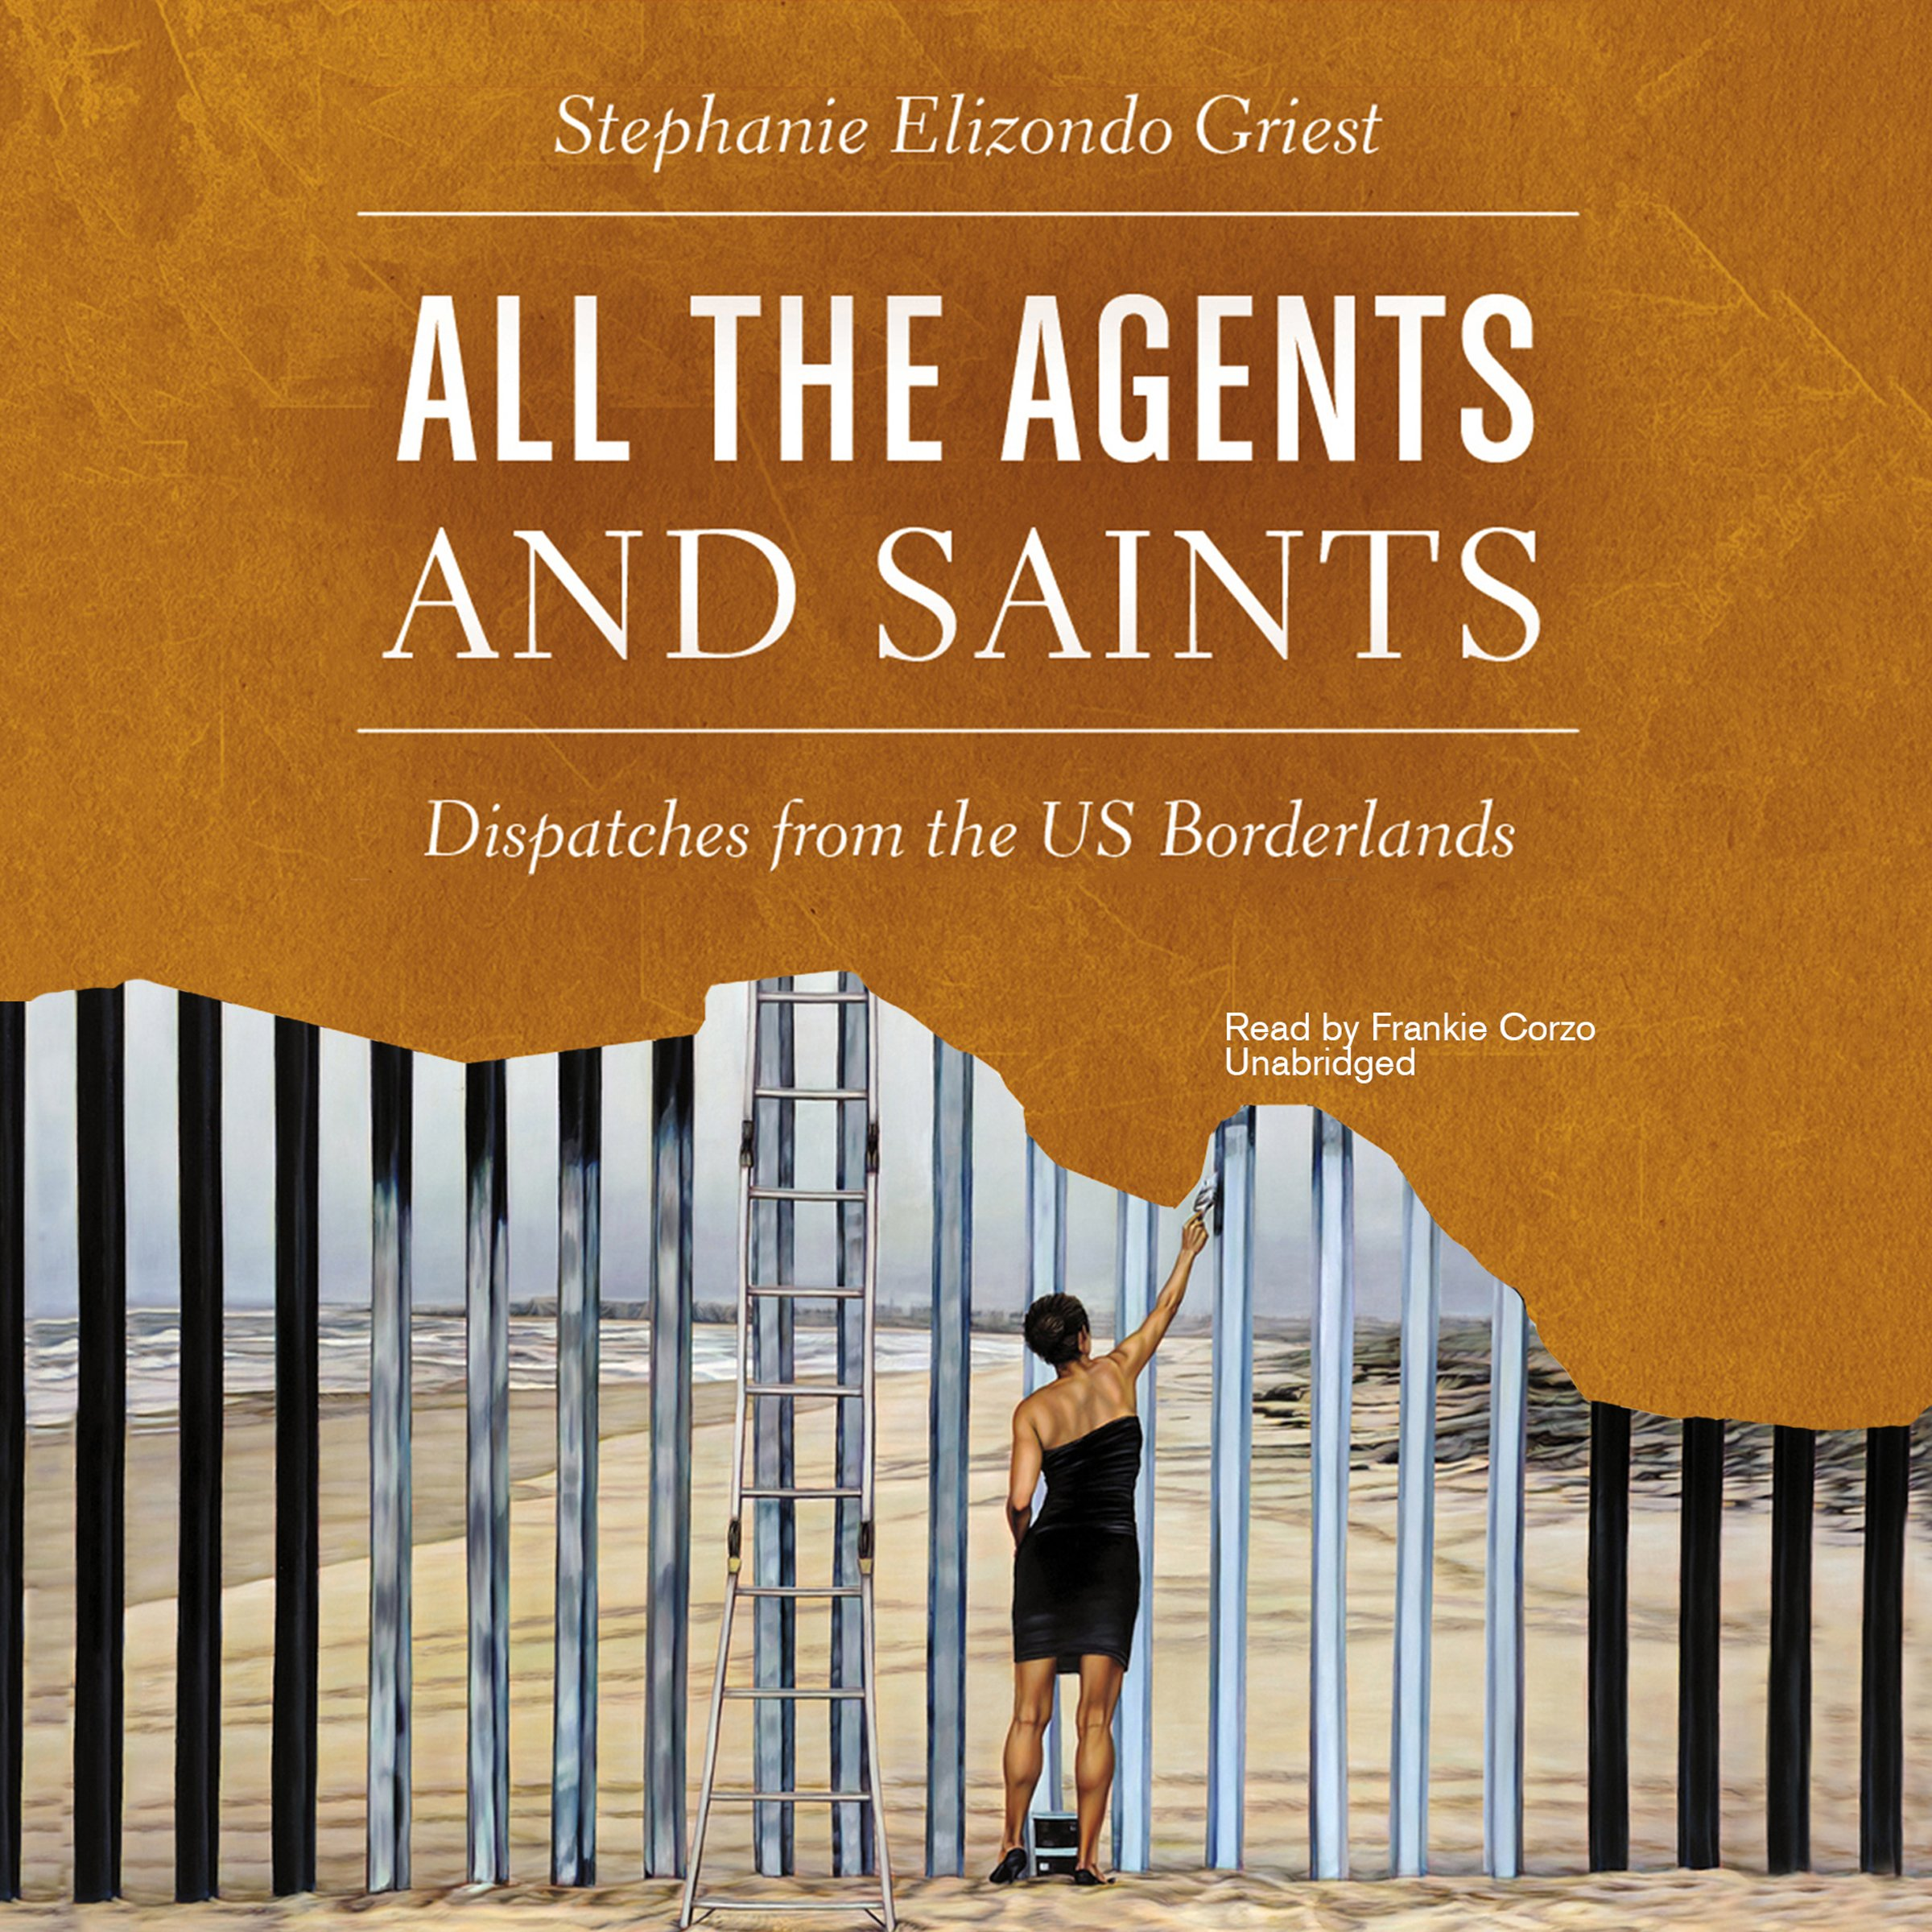 All the Agents and Saints: Dispatches from the US Borderlands